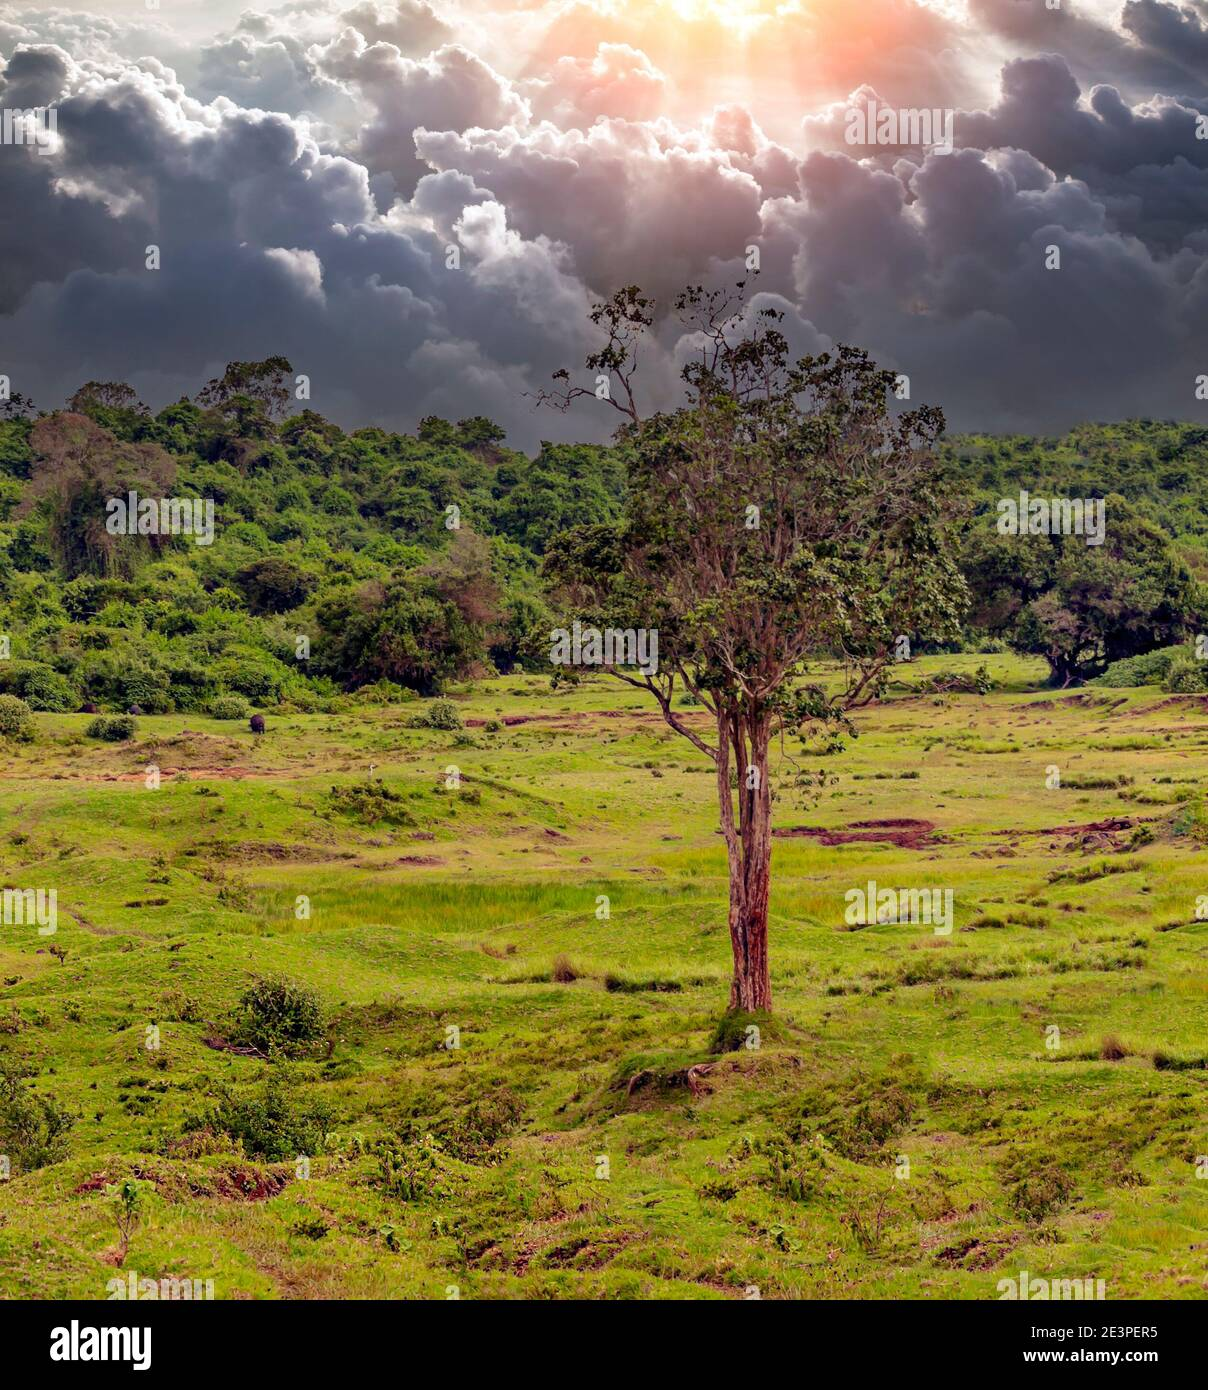 Trees in the forest of Kenya in a cloudy day Stock Photo